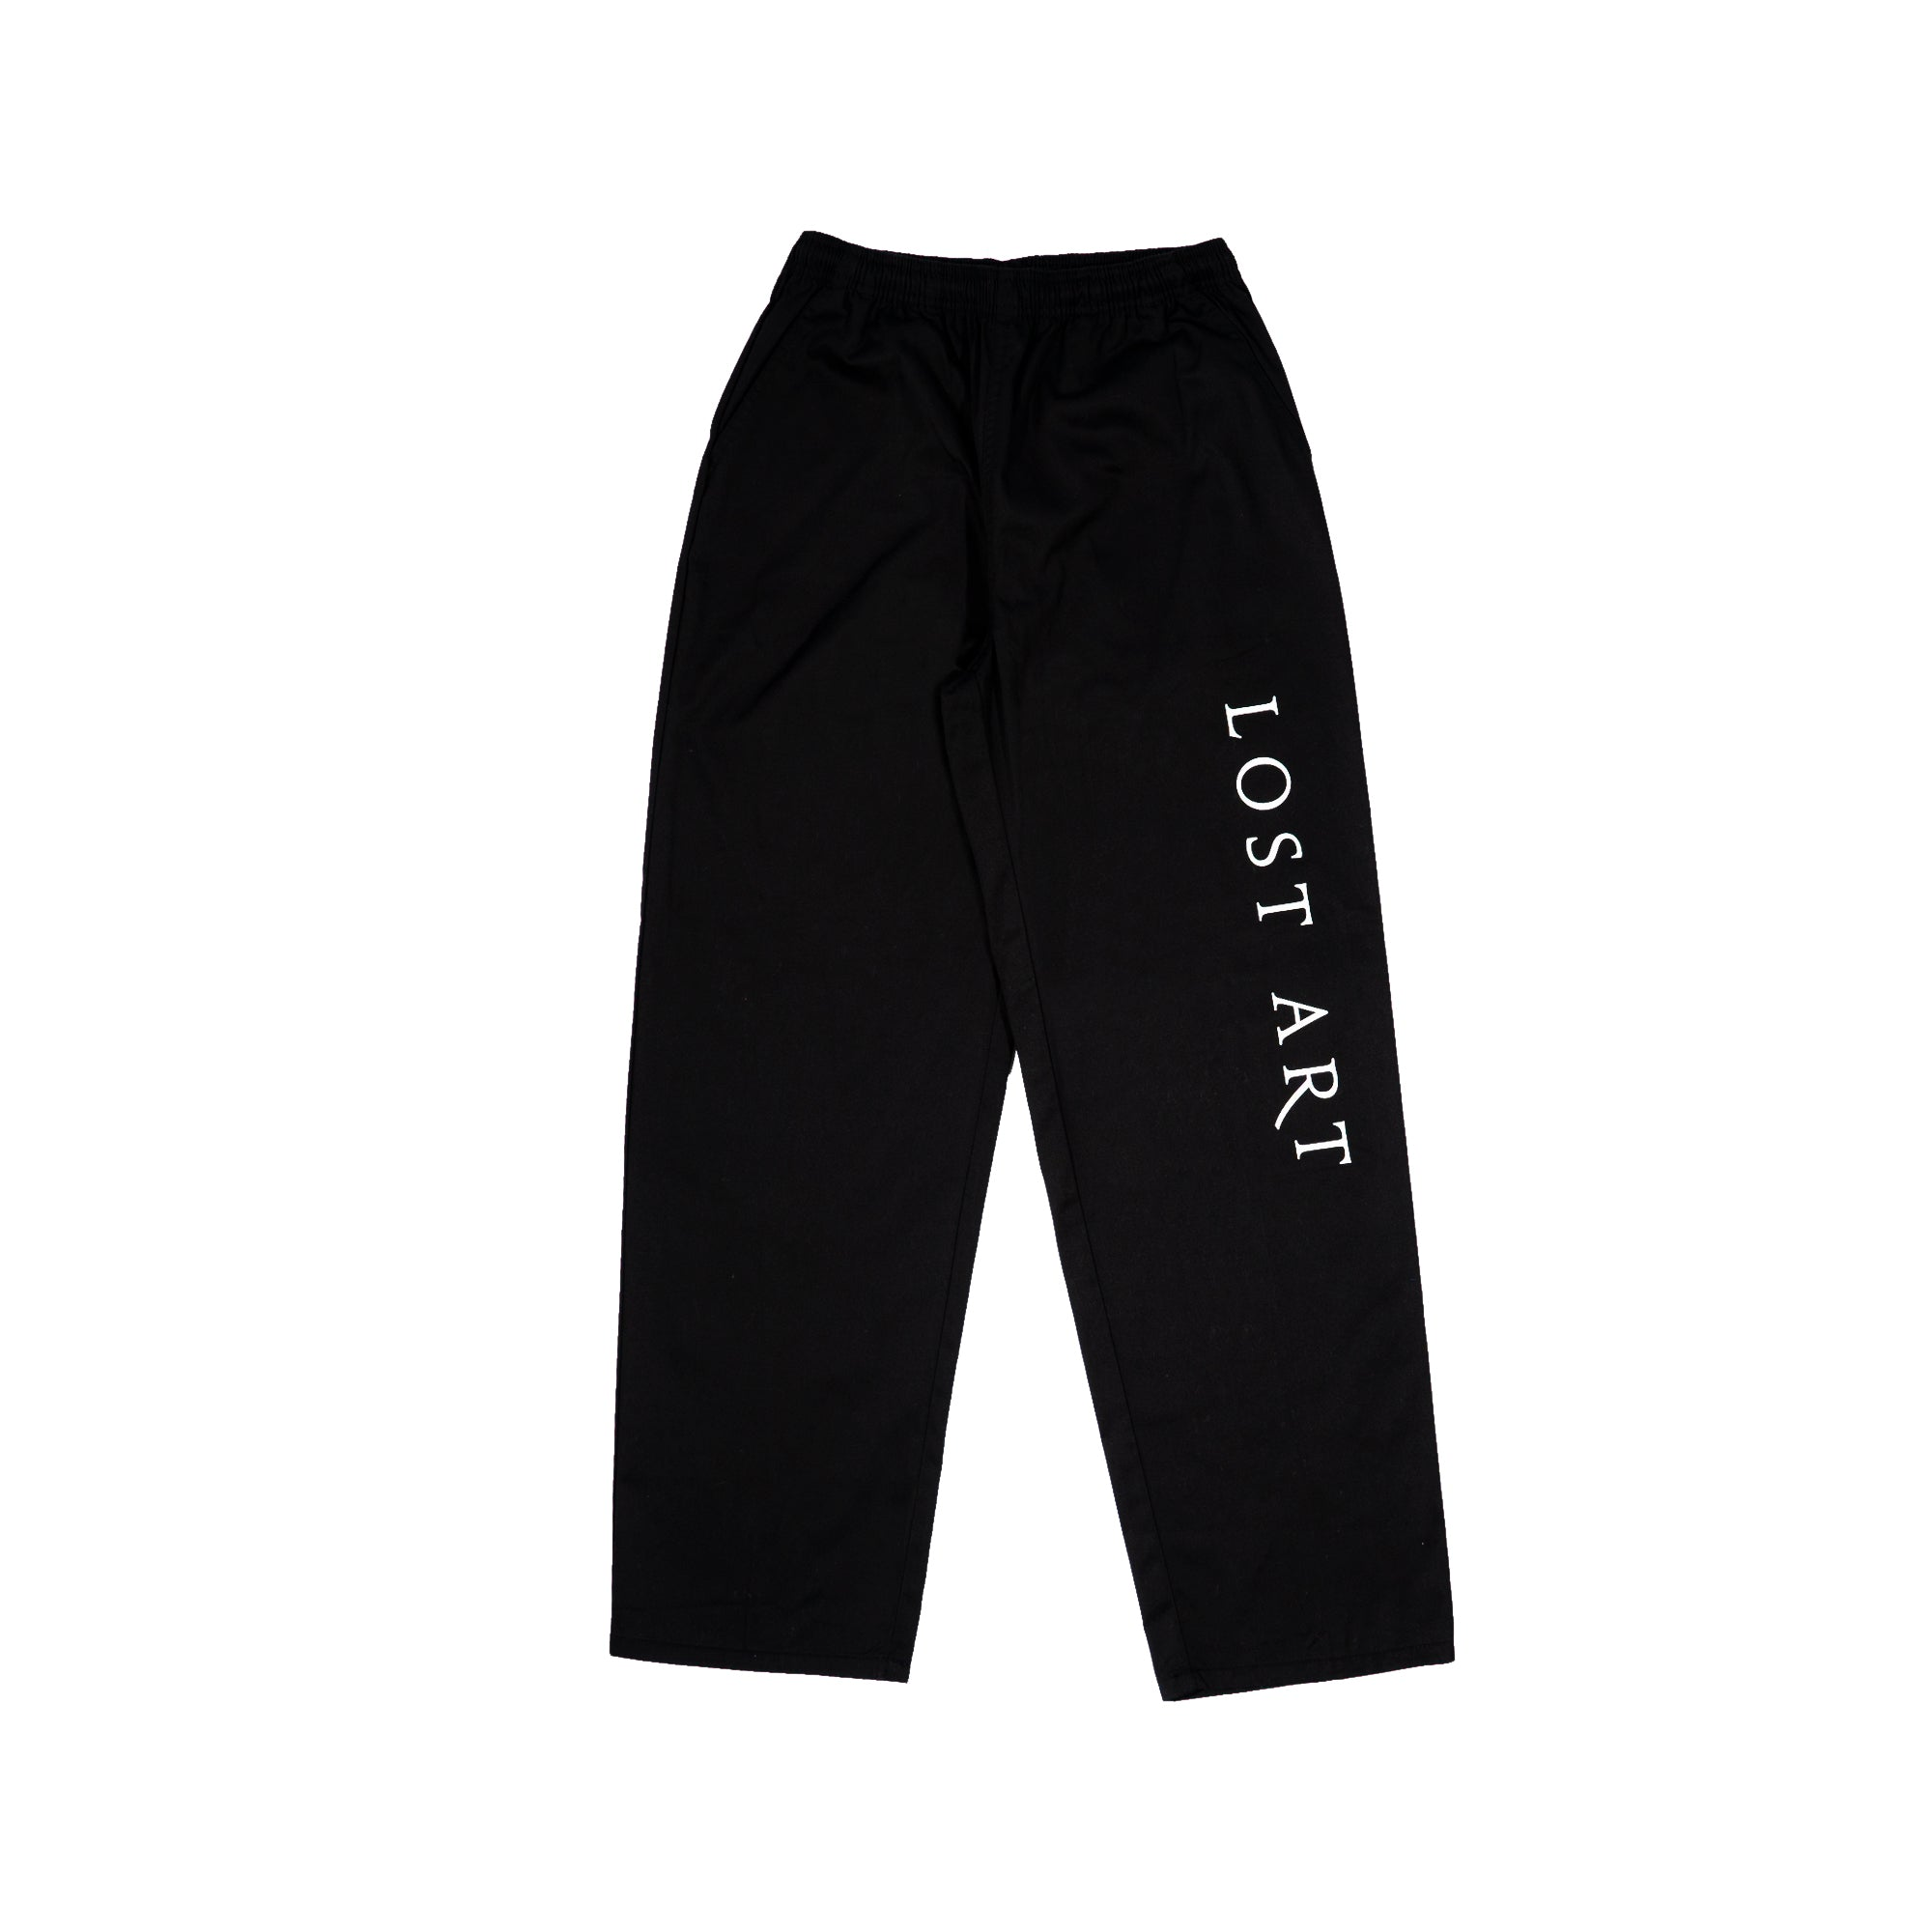 Lost Art -</br>Nimes Relaxed Fit Pant </br> Black